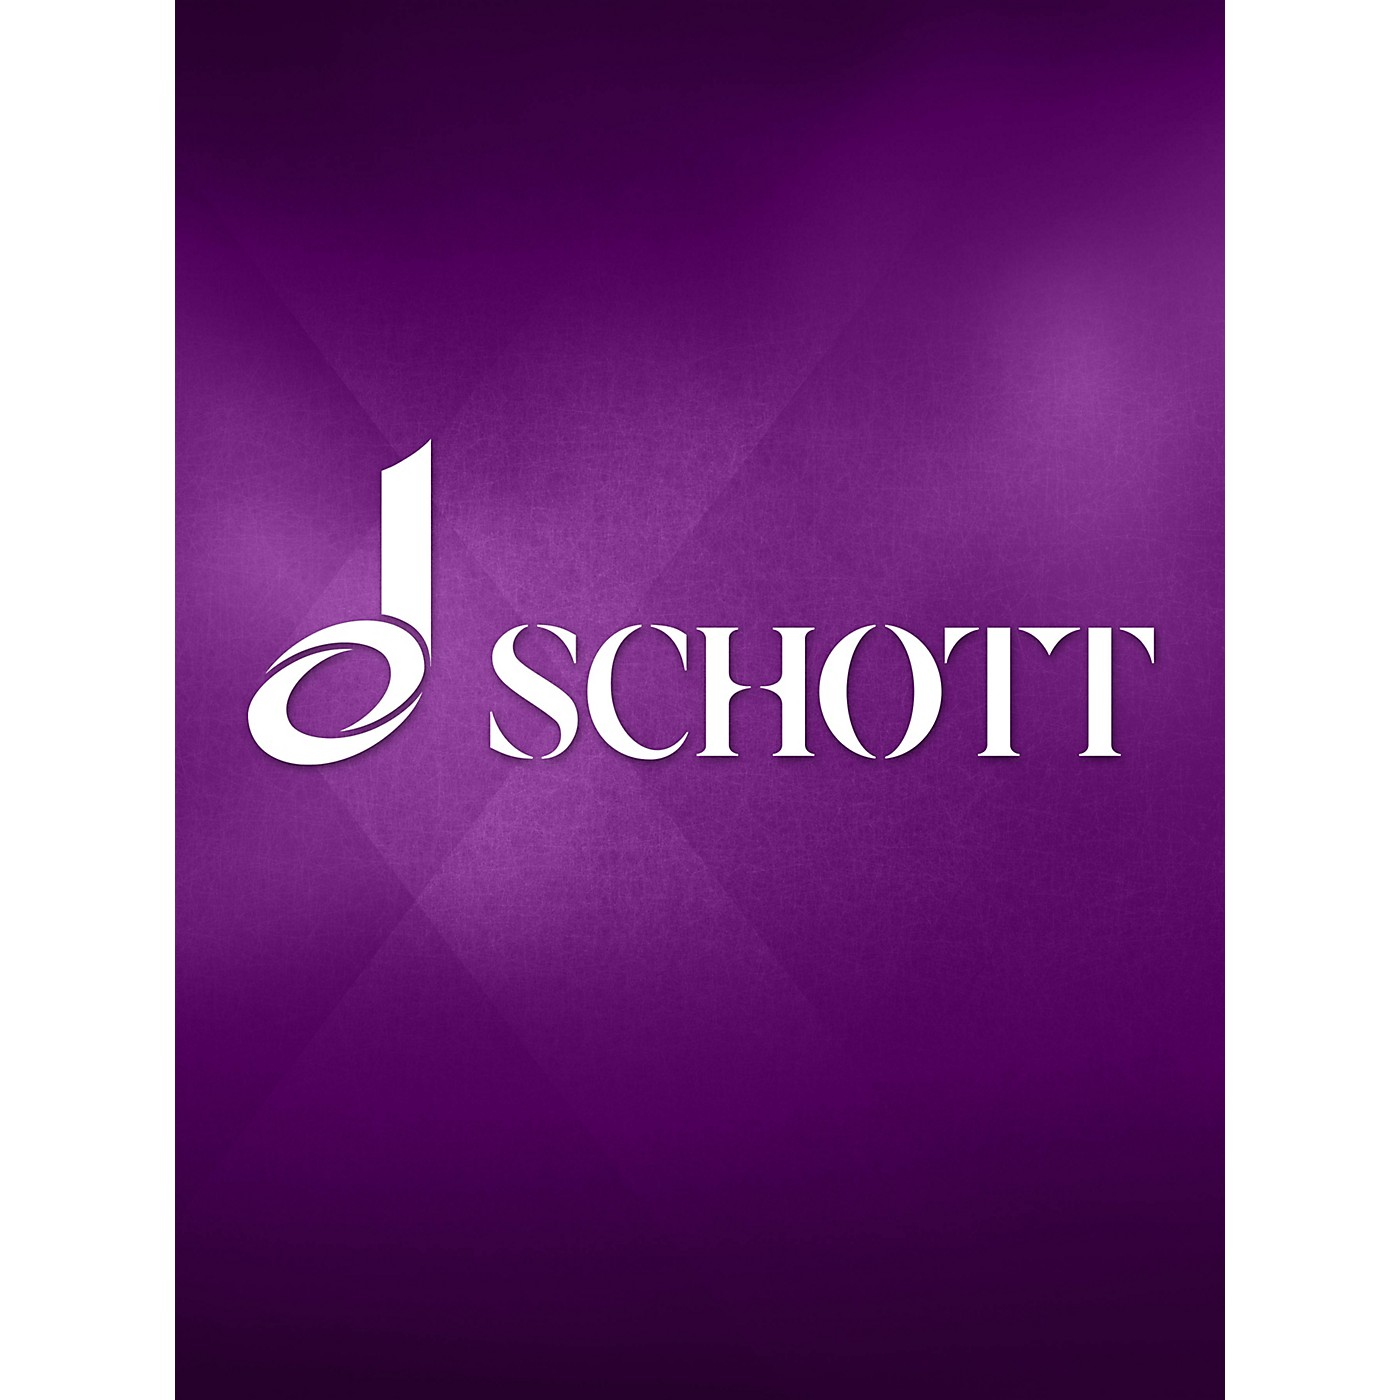 Schott Trio 1 (Score and Parts) Schott Series thumbnail